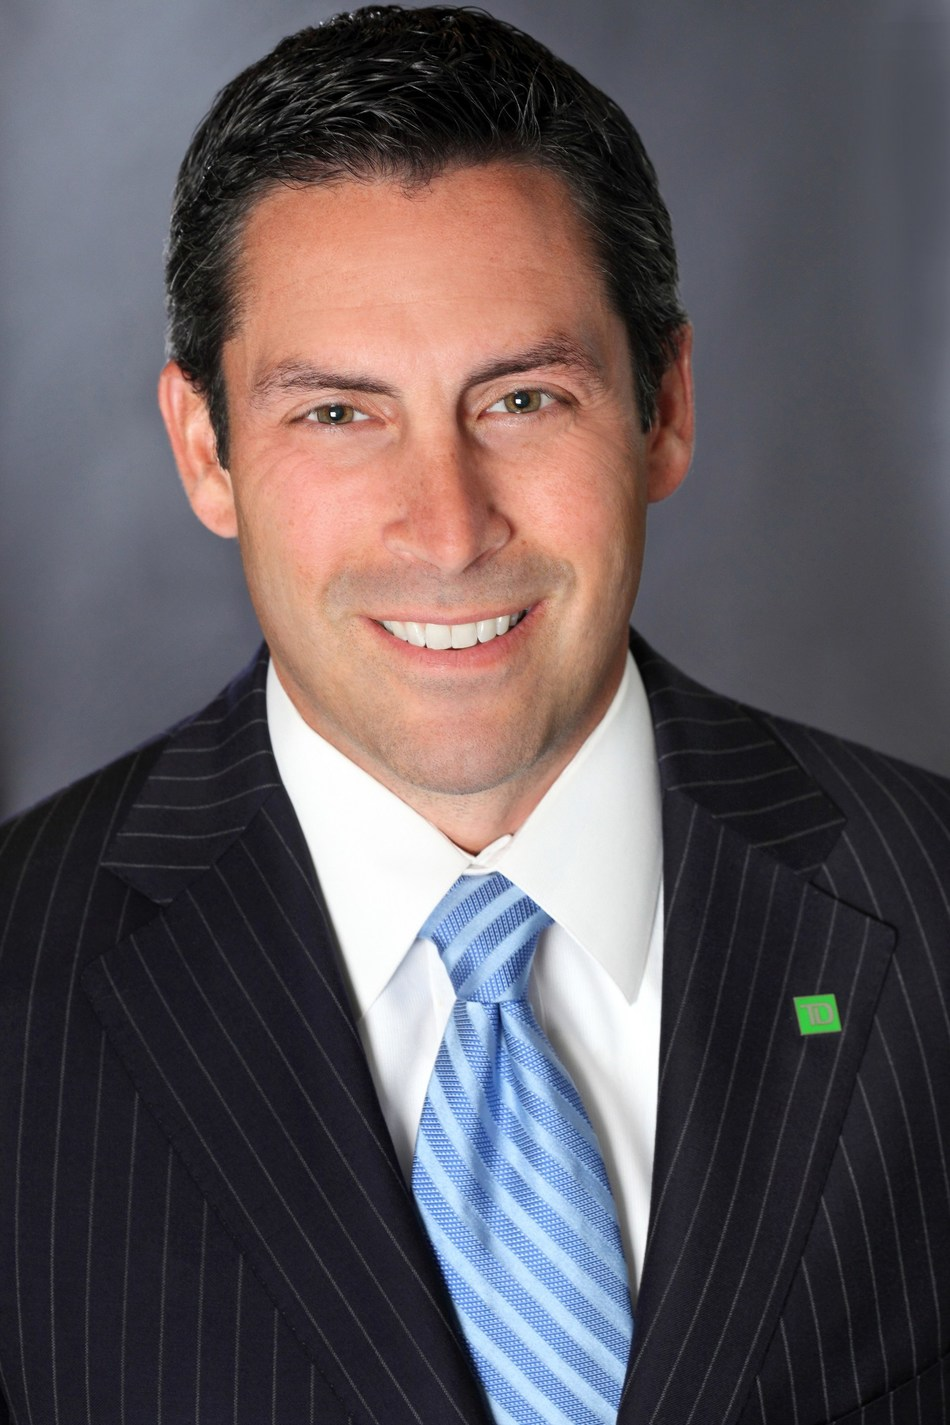 Chris Giamo, Head of Regional Commercial Bank, TD Bank